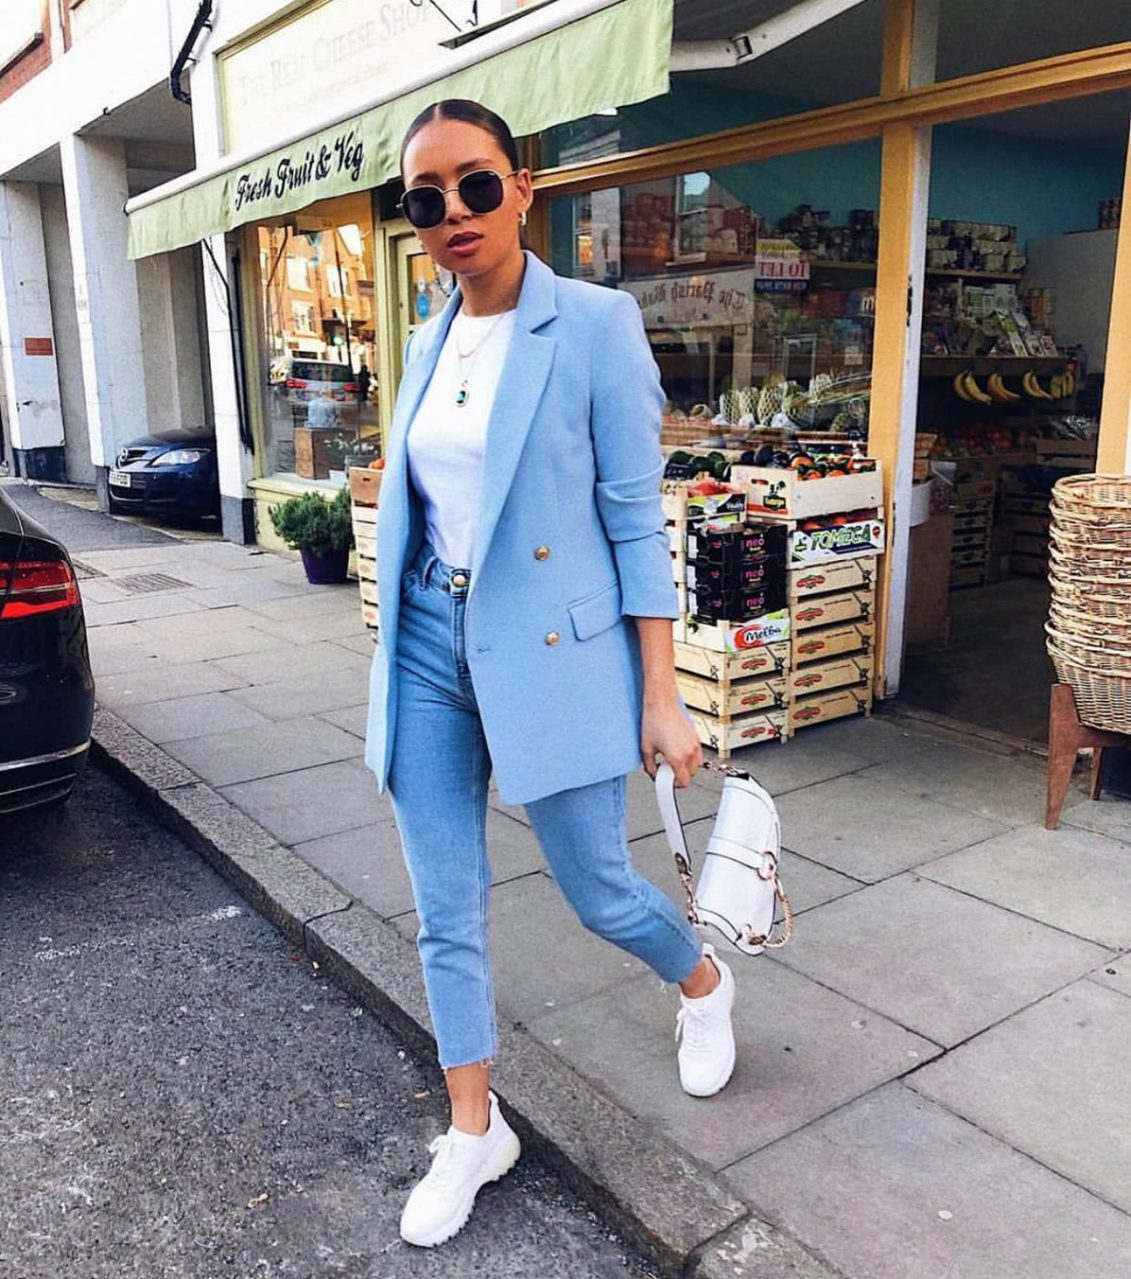 Like a Girl Boss - 10 Looks Com Blazer + Tênis, looks com tênis e blazer, looks com blazer, looks com blazer e tenis, looks com blazer, look com blazer e tenis, looks com tenis blazer, blazer e tenis, look tenis blazer, look blazer tenis